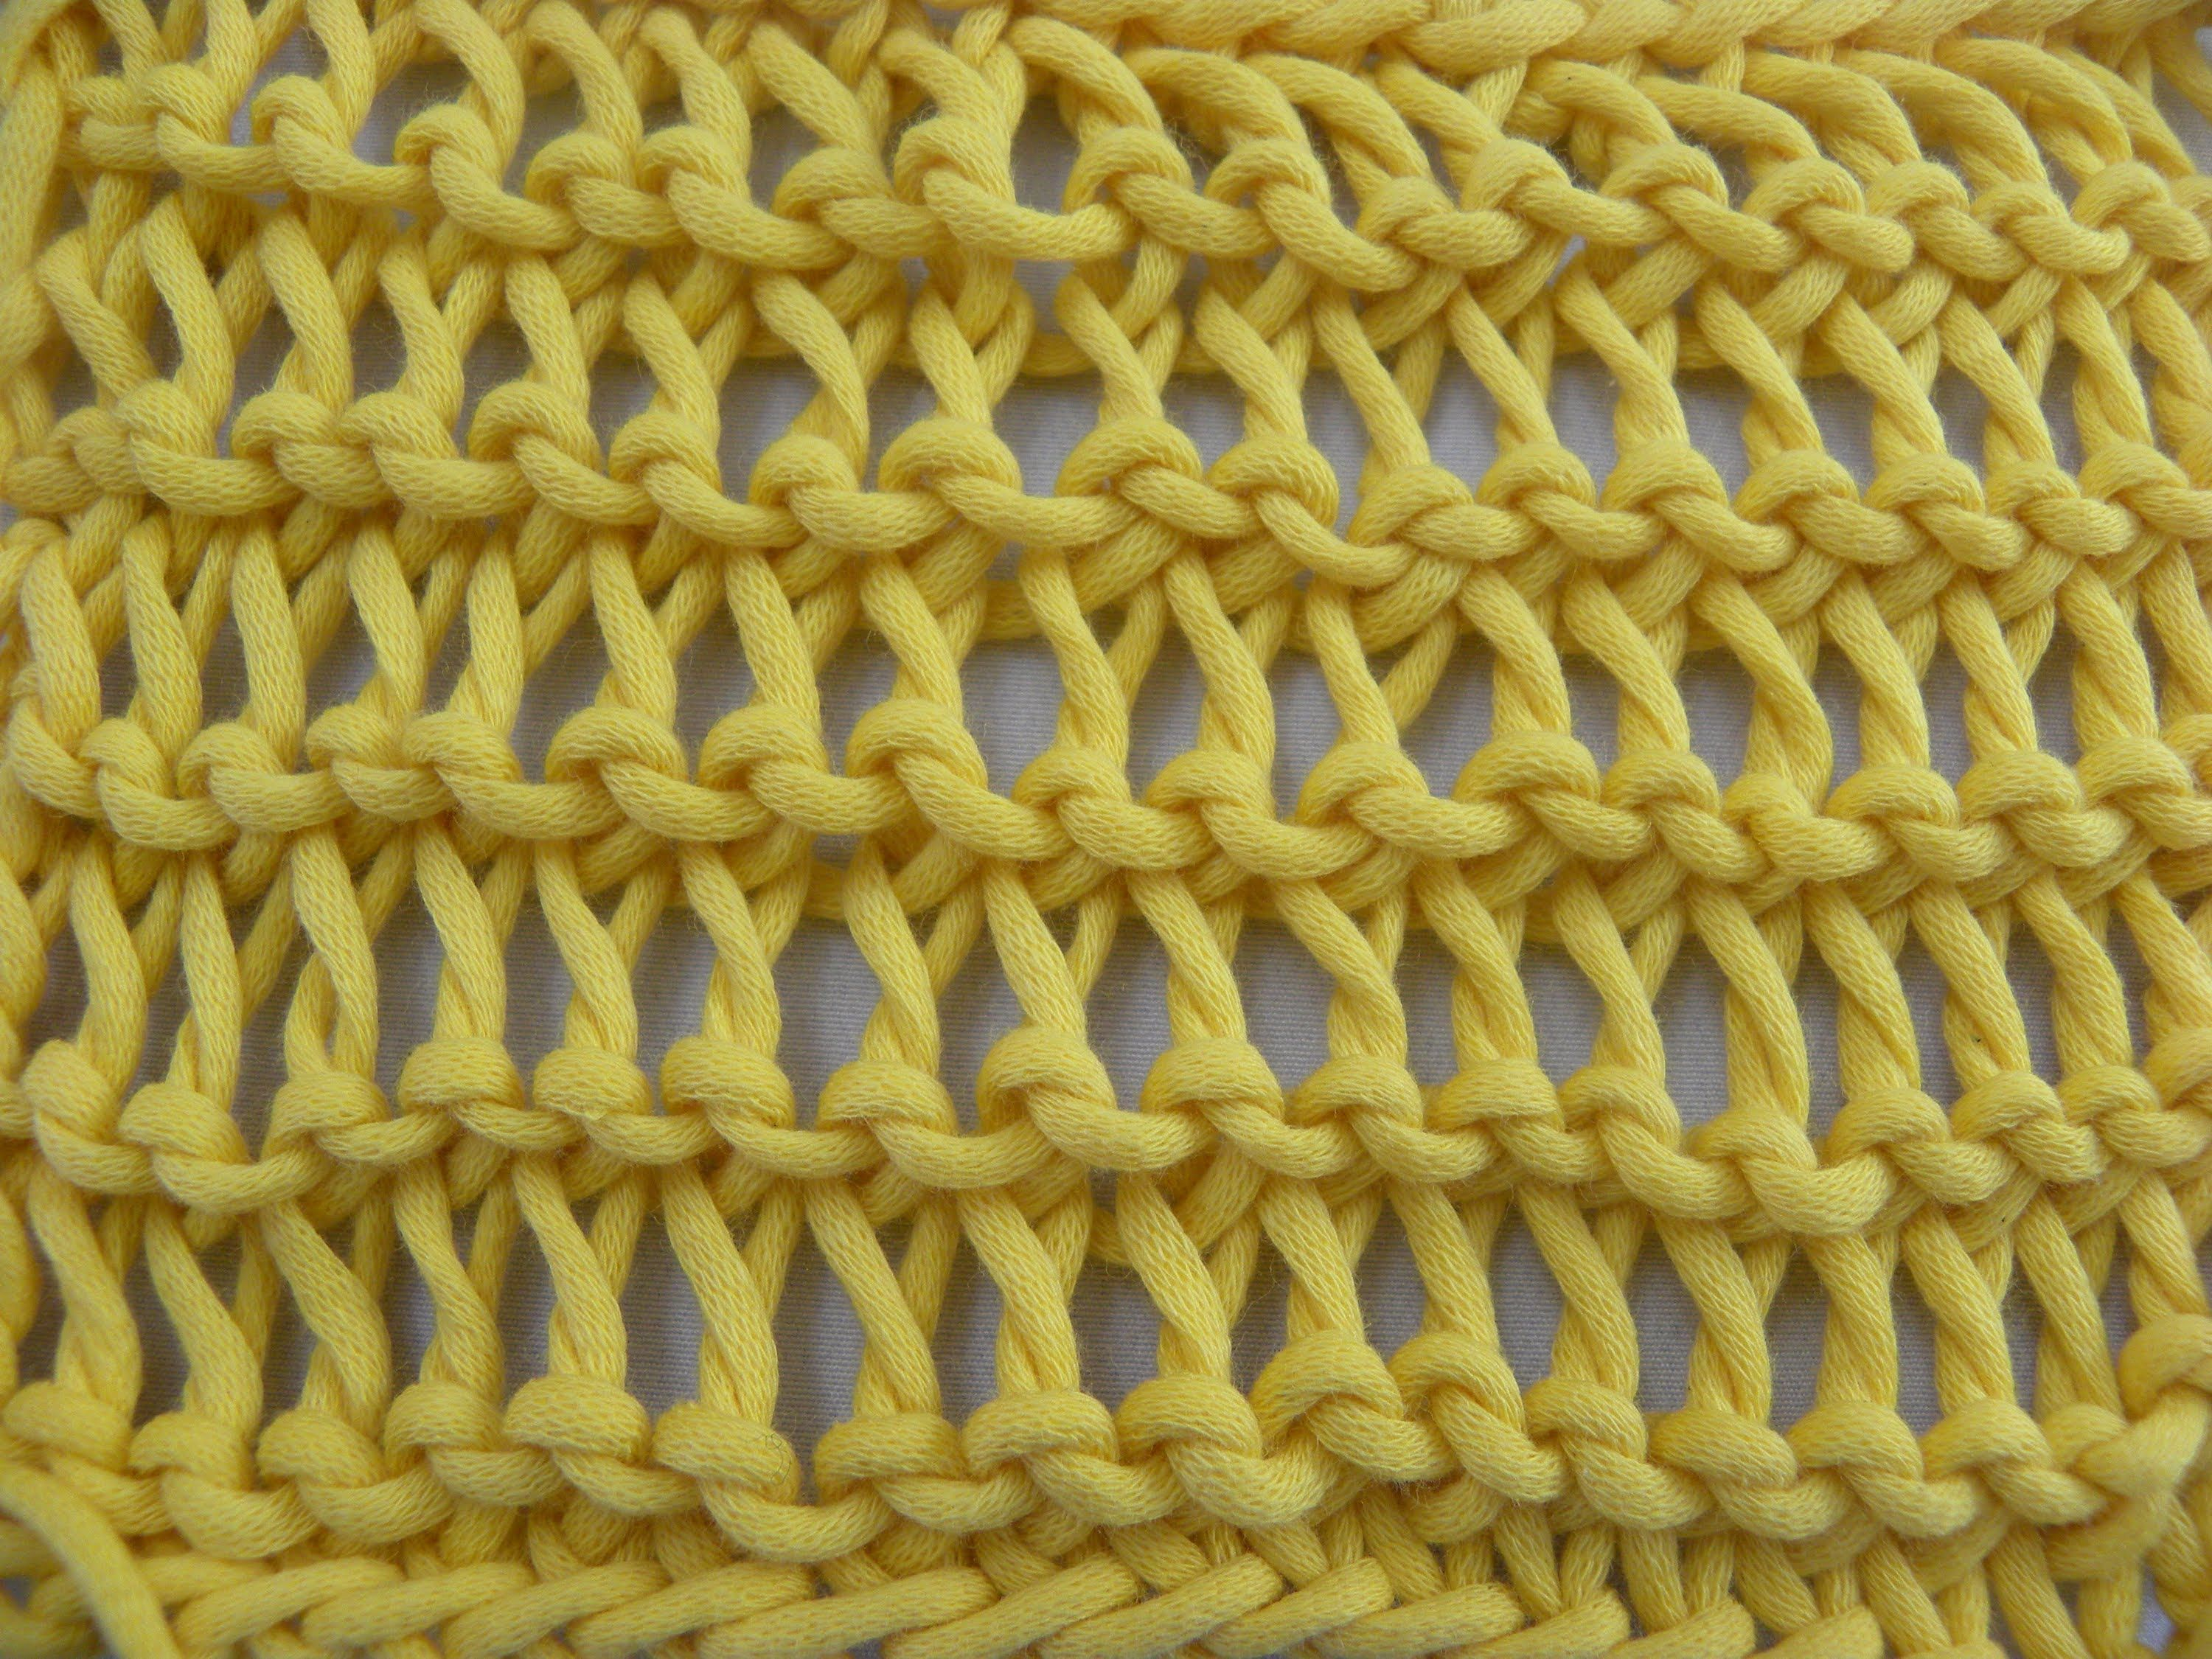 Stricken Verdrehte Fallmaschen Stricken Pinterest Stricken